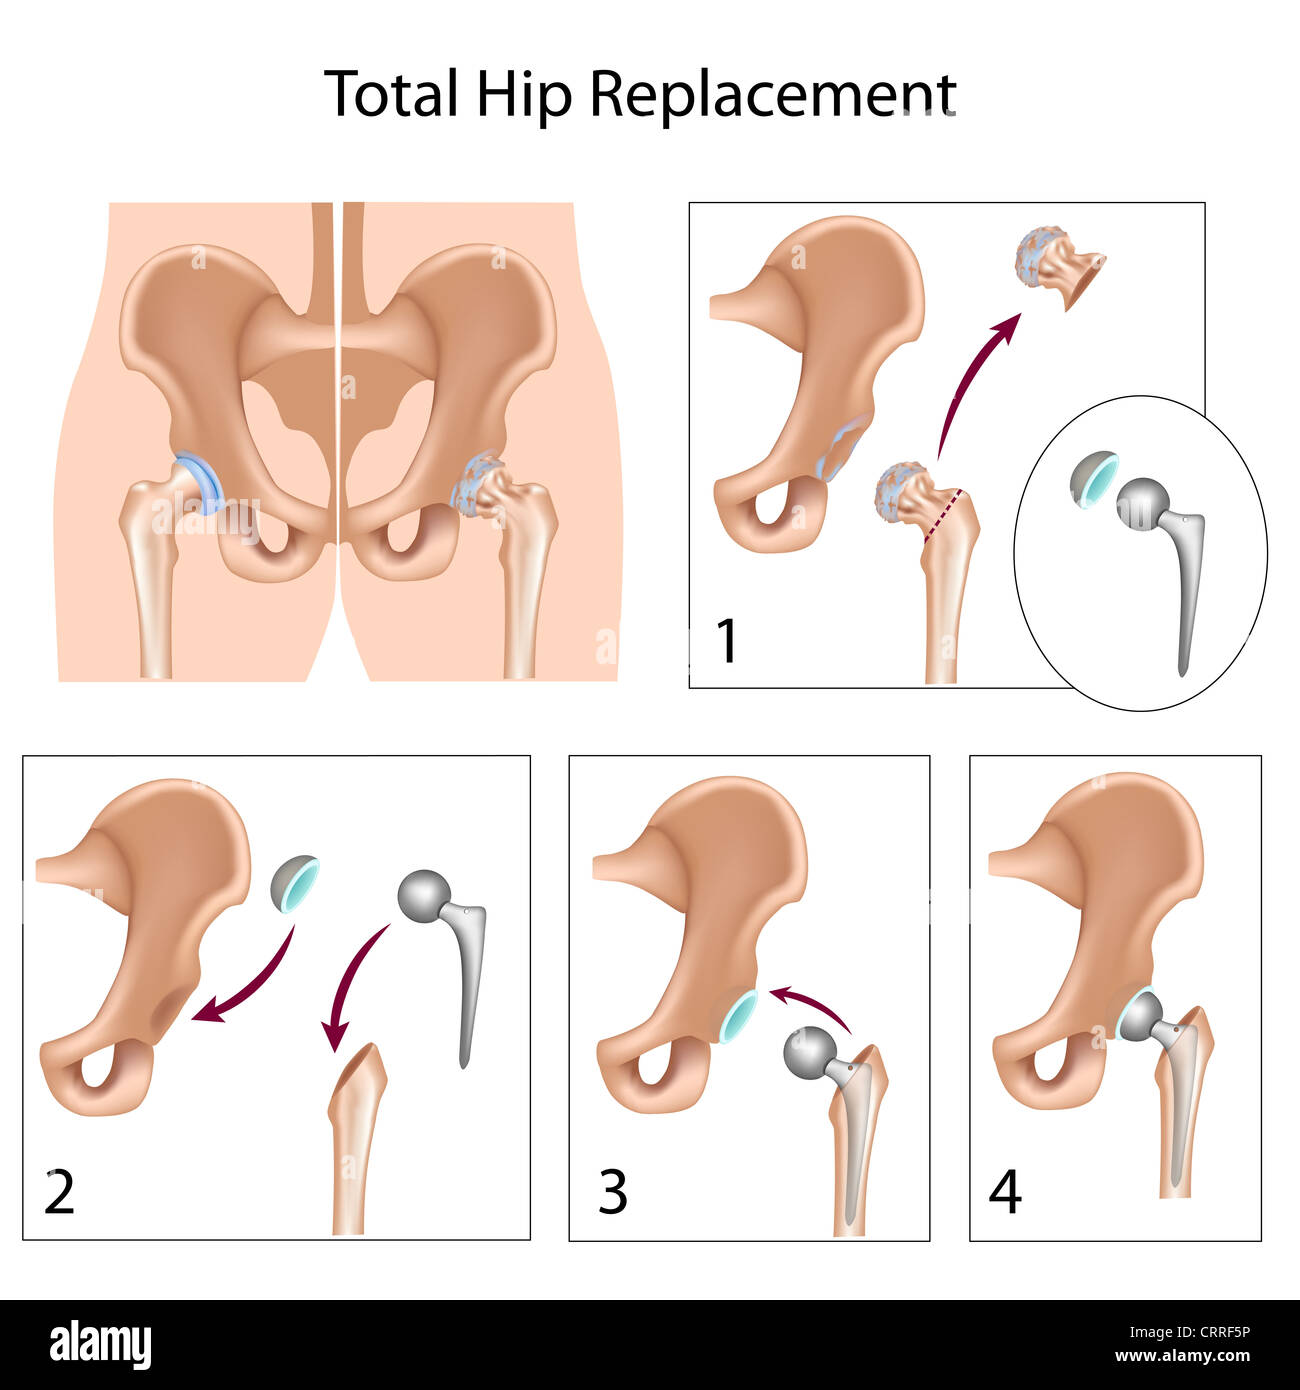 Total hip replacement surgery - Stock Image